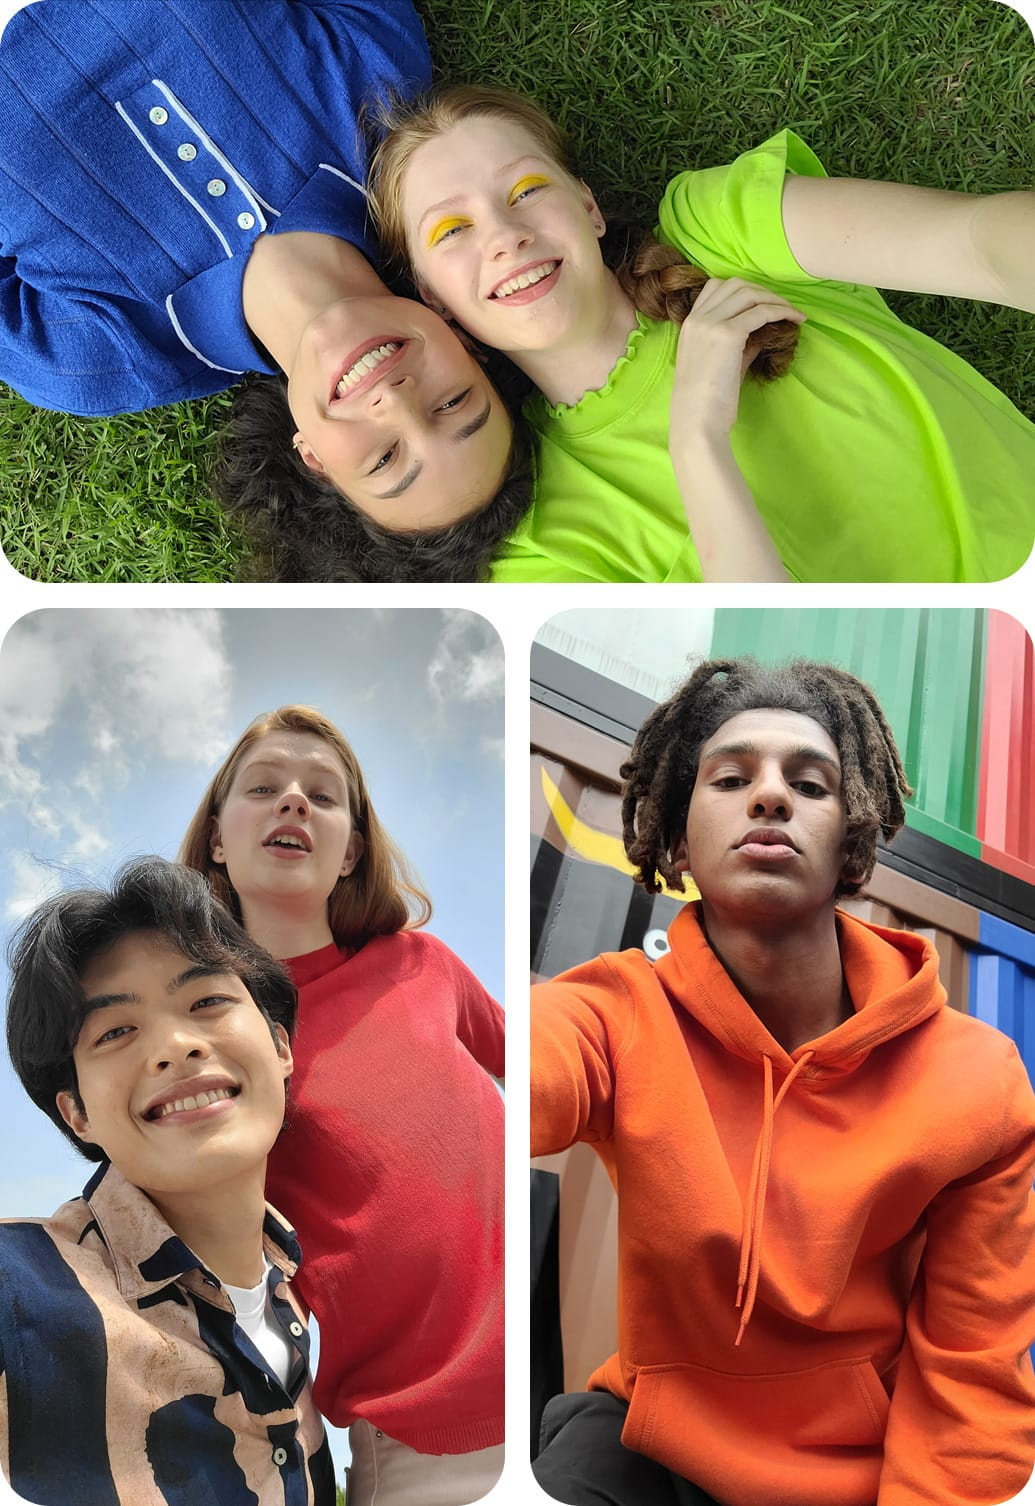 Description: Three kinds of selfies, taken with the 32MP Front Camera for high quality, detailed shots. Two women are laying in a field with their heads touching. A low-angle selfie of a woman. A low-angle selfie of a man and a woman looking down at the phone.